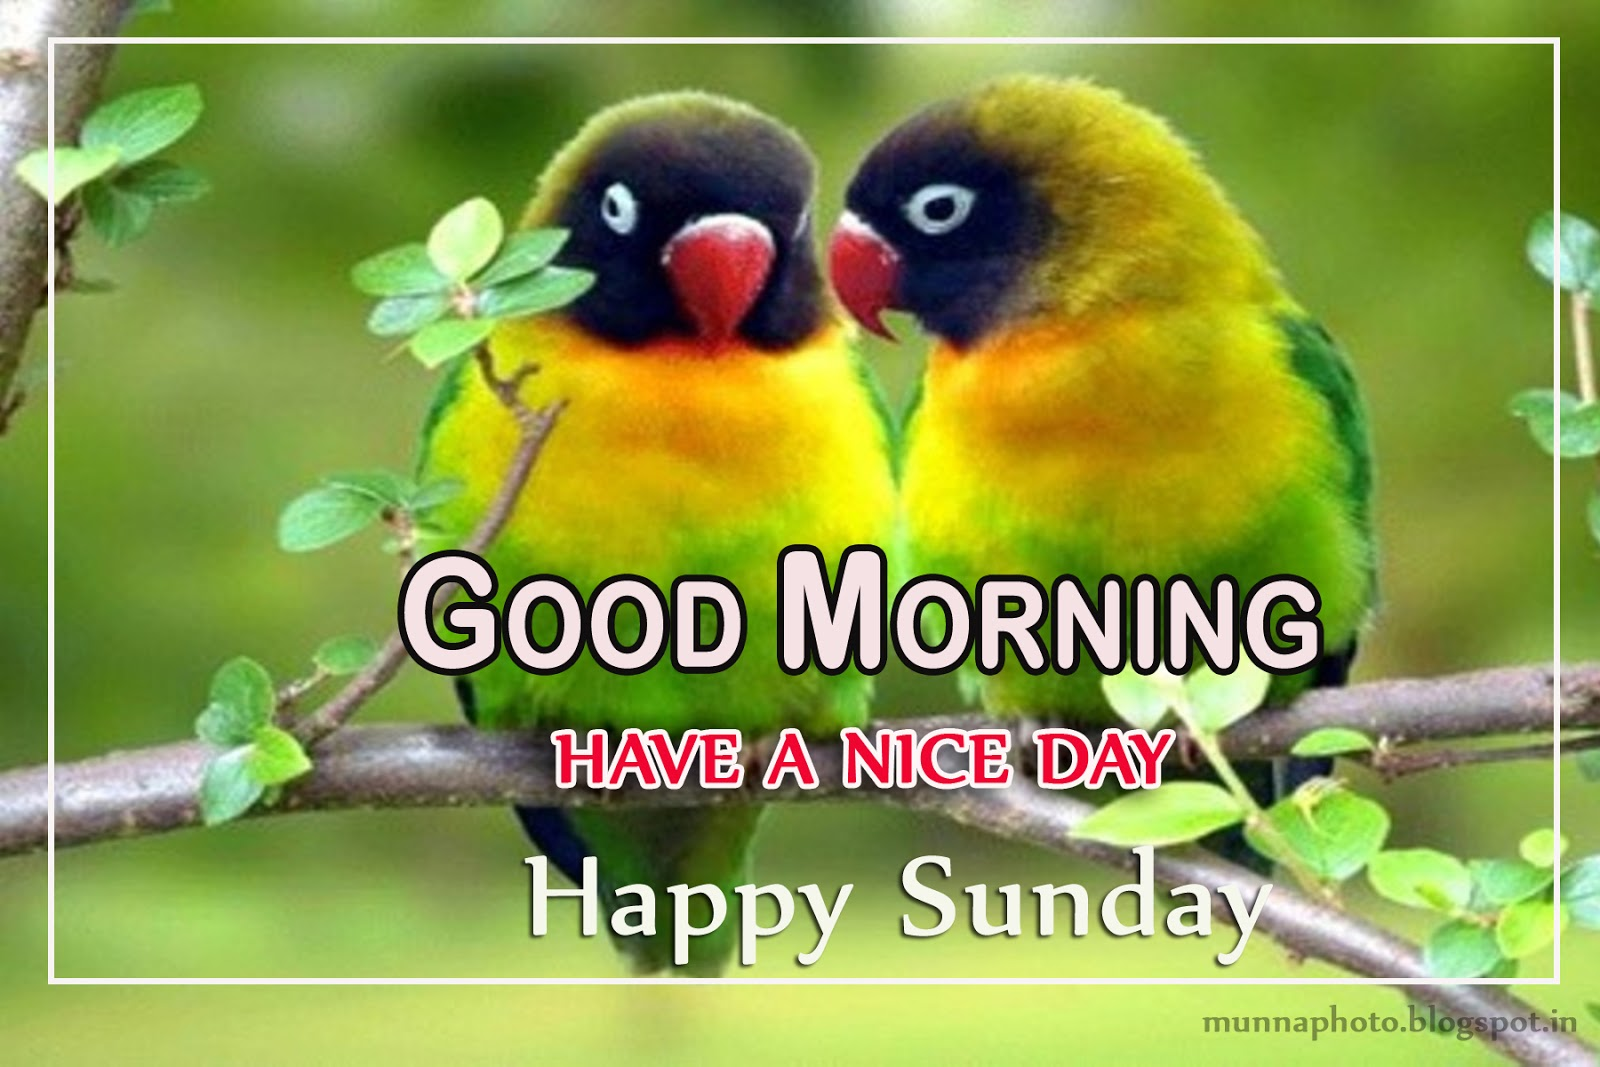 Love Birds Good Morning Wallpaper : Munna Photo: cute-love-birds-good morning--photos-background